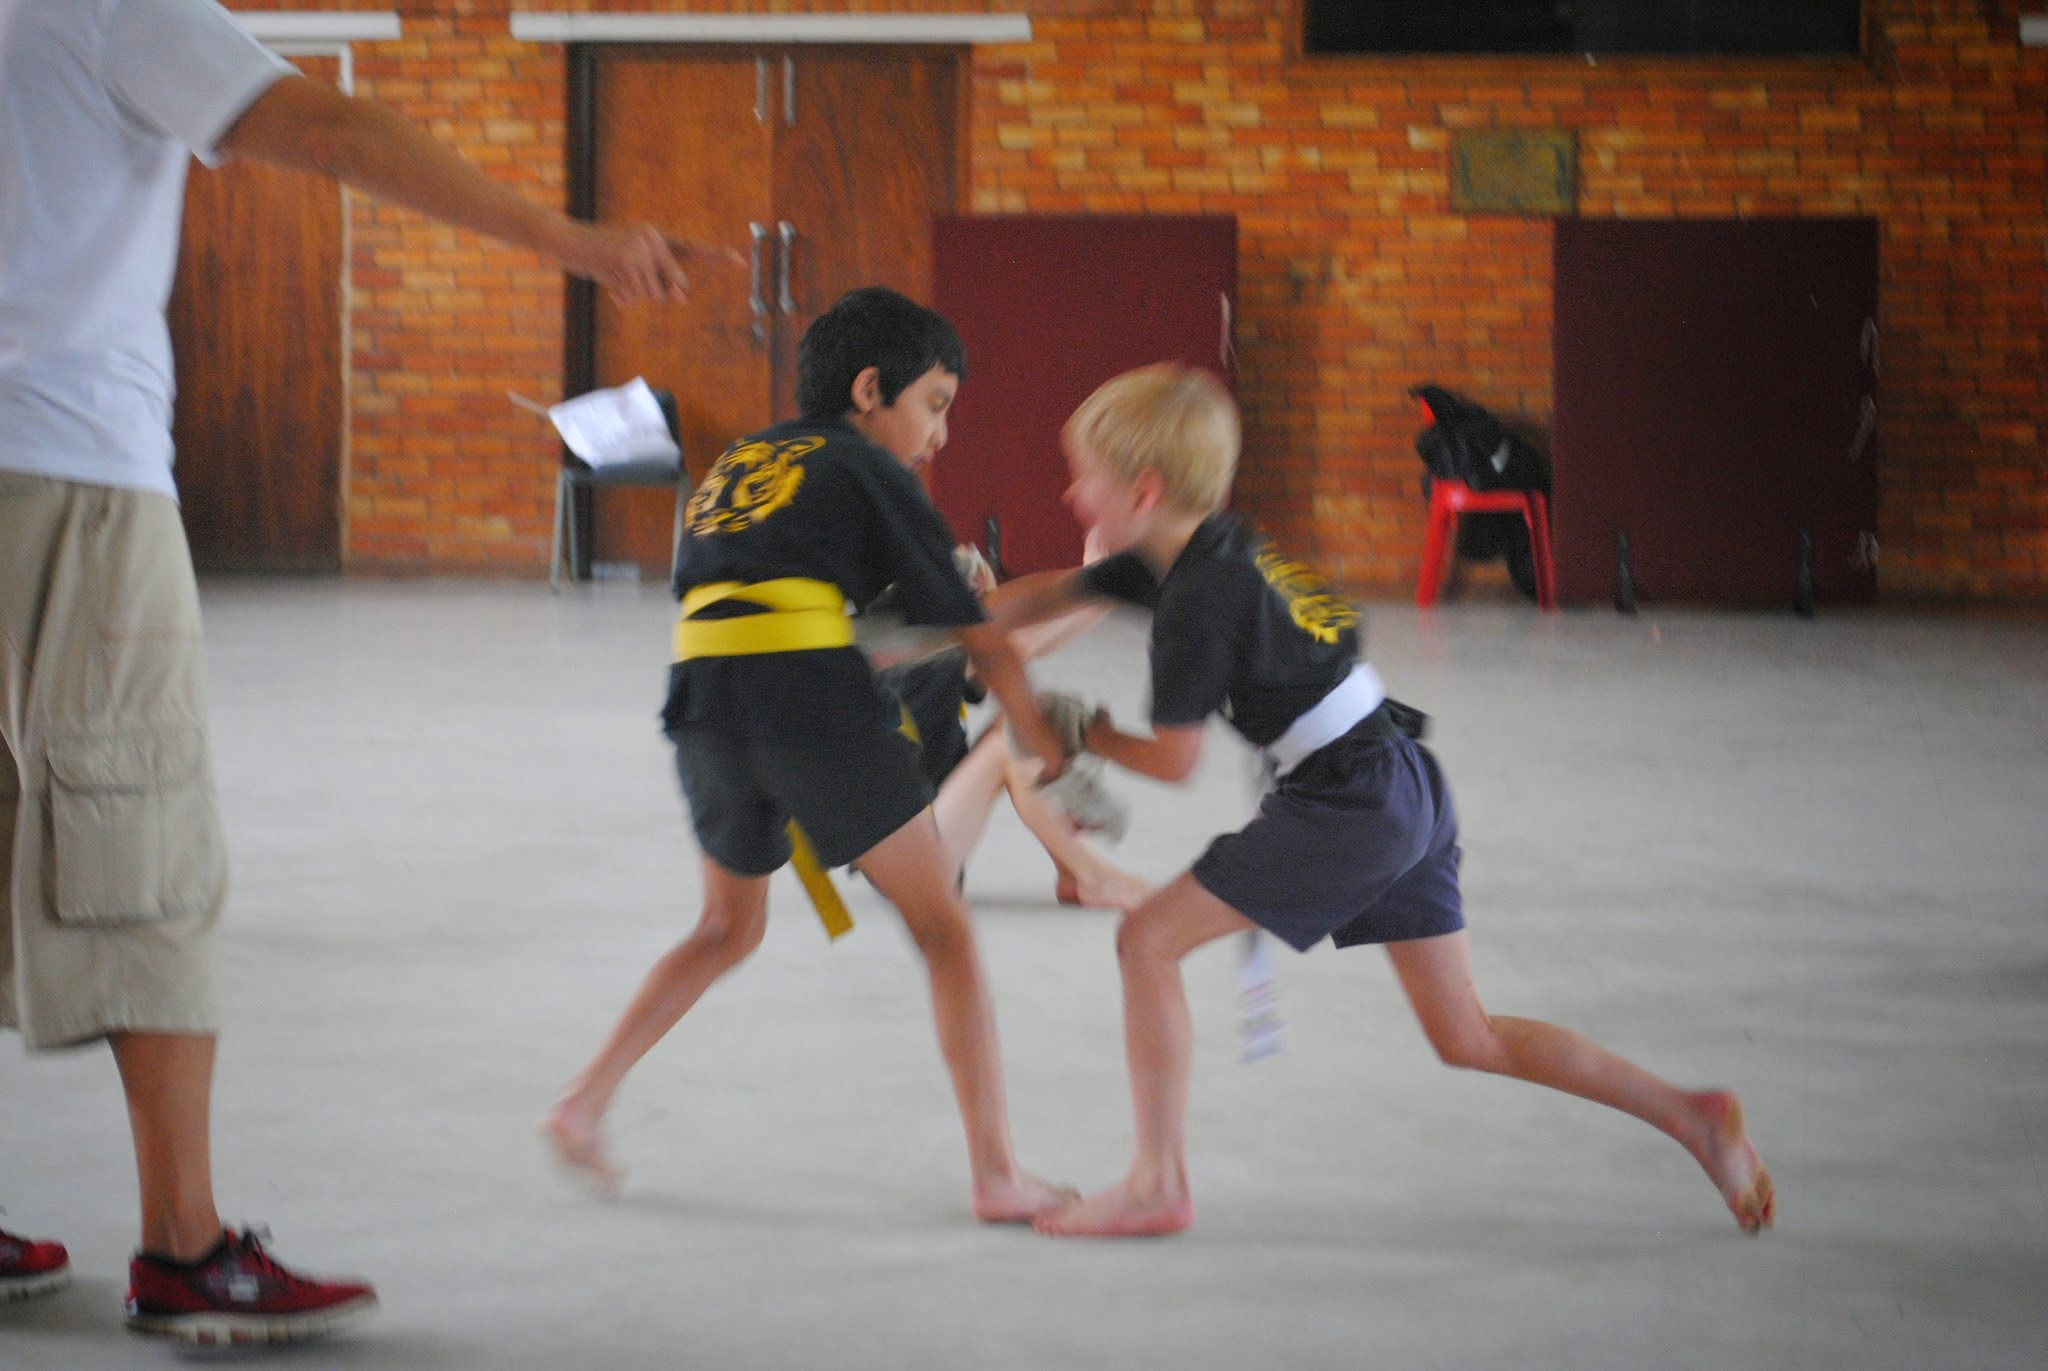 Our Venue for Karate Lessons in Parkview, Johannesburg